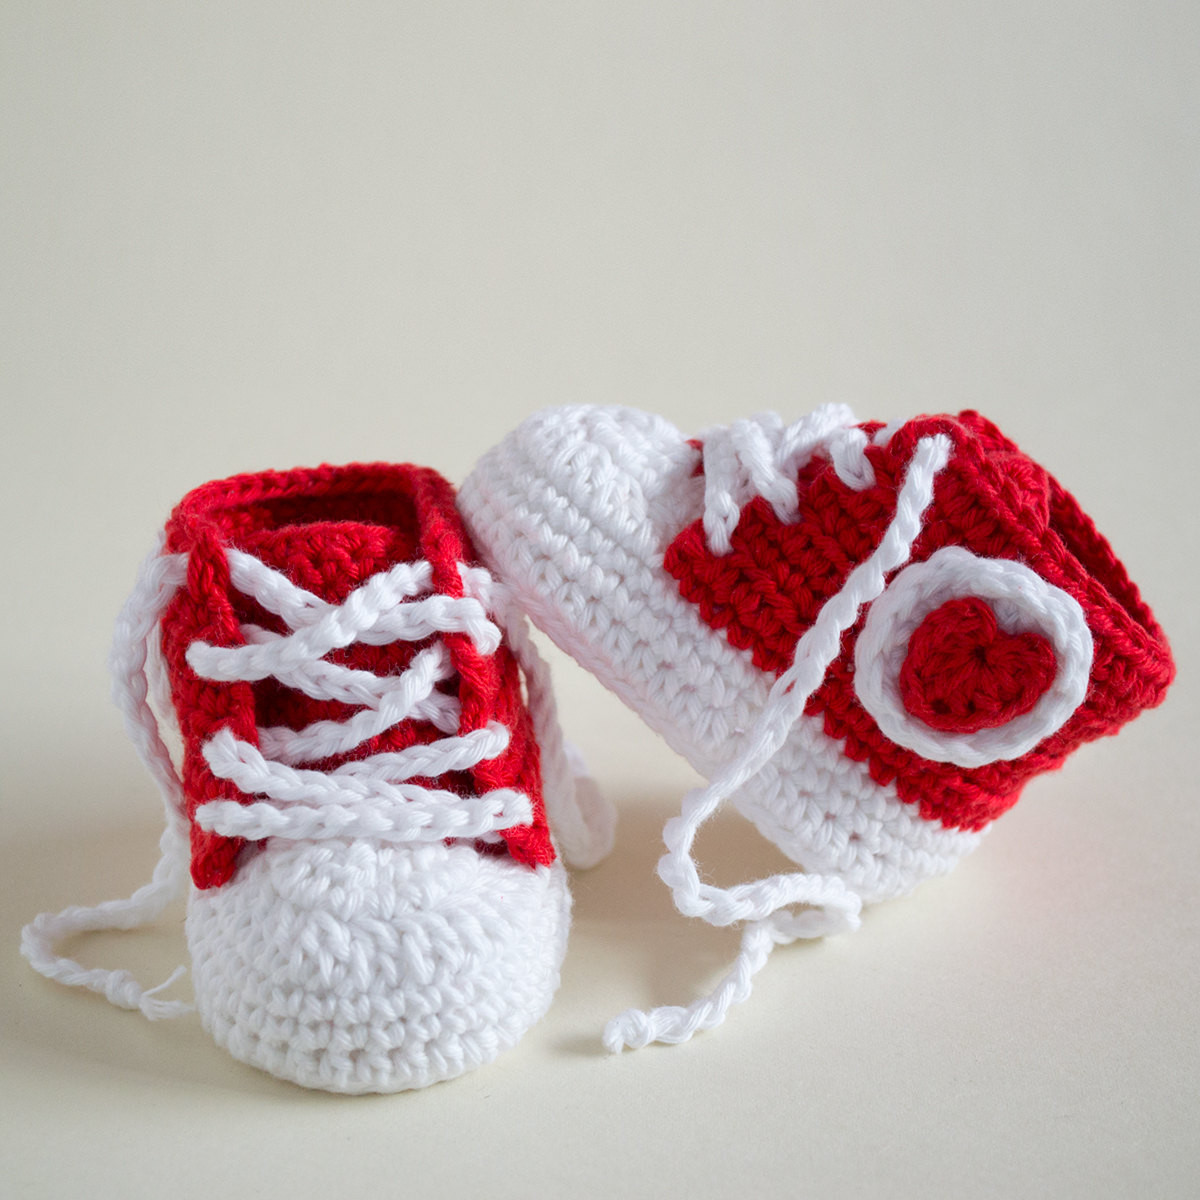 Lovely Crochet Pattern Crochet Baby Booties Fancy Baby Baby Shoes Crochet Baby socks Of Beautiful Crochet Baby Booties Patterns for Sweet Little Feet Crochet Baby socks